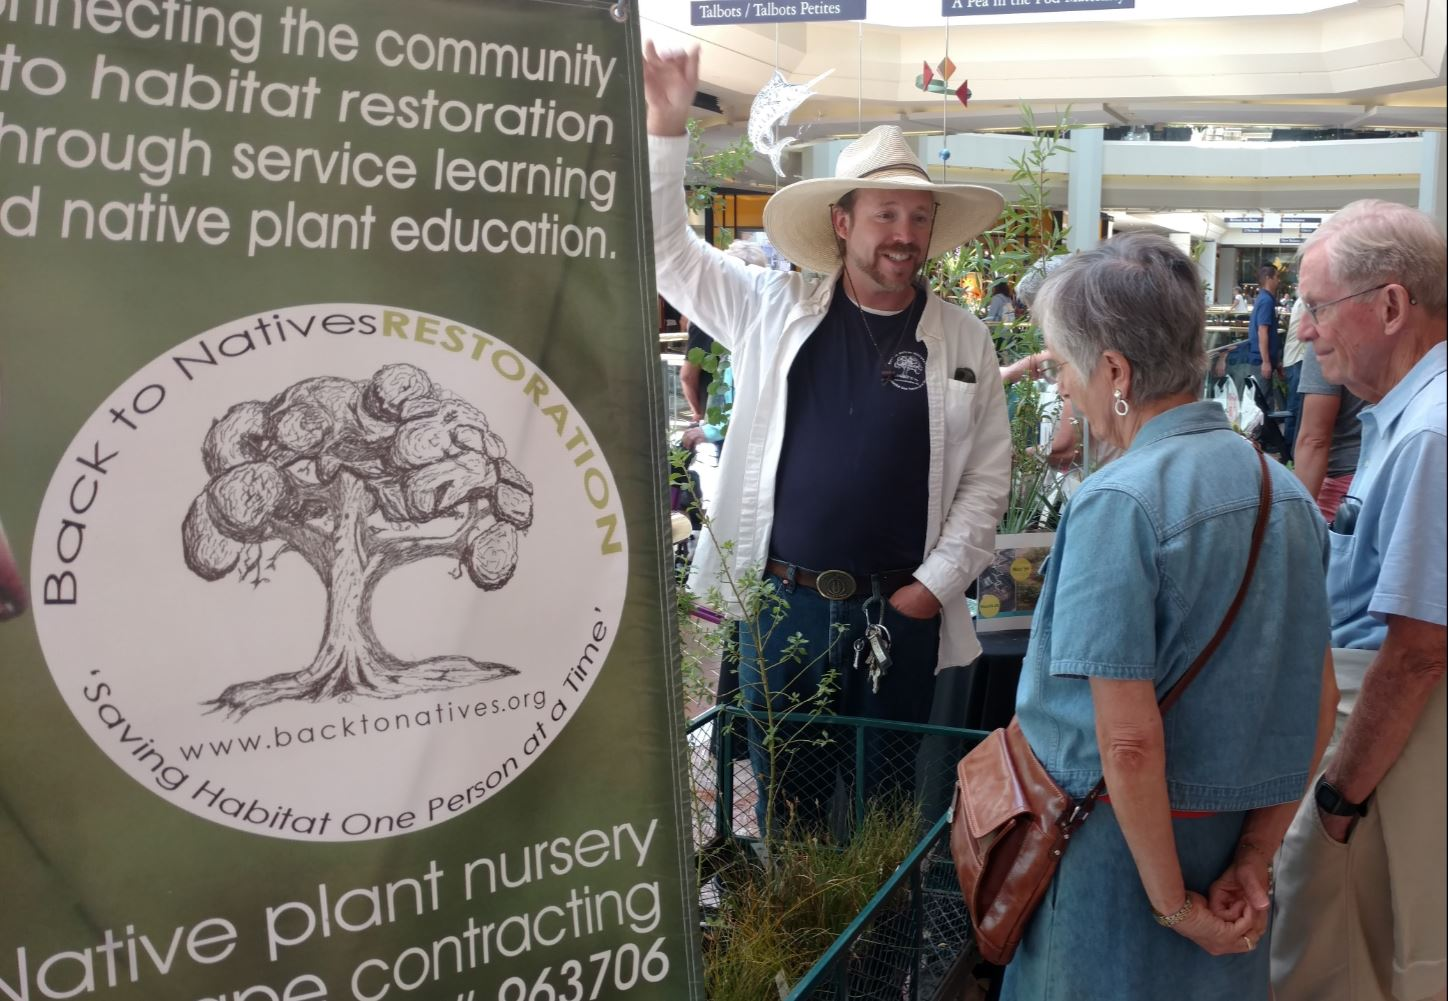 Press Release: BTN To Sell Native Plants At Anaheim Home And Garden Show